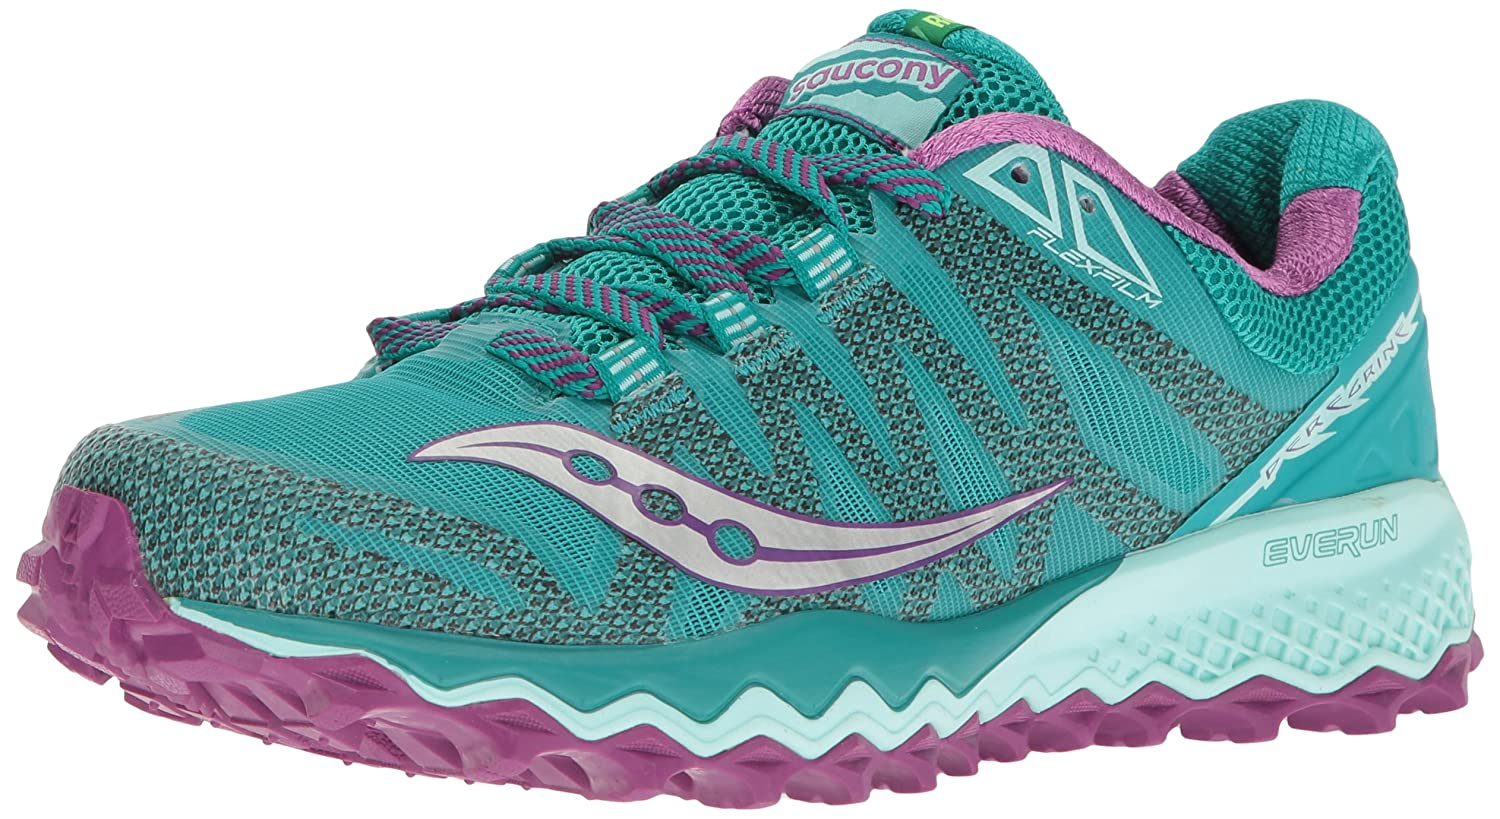 Saucony Women's Peregrine 7 Trail Running Shoe B005BFC656 9 B(M) US|Teal/Purple/Citron